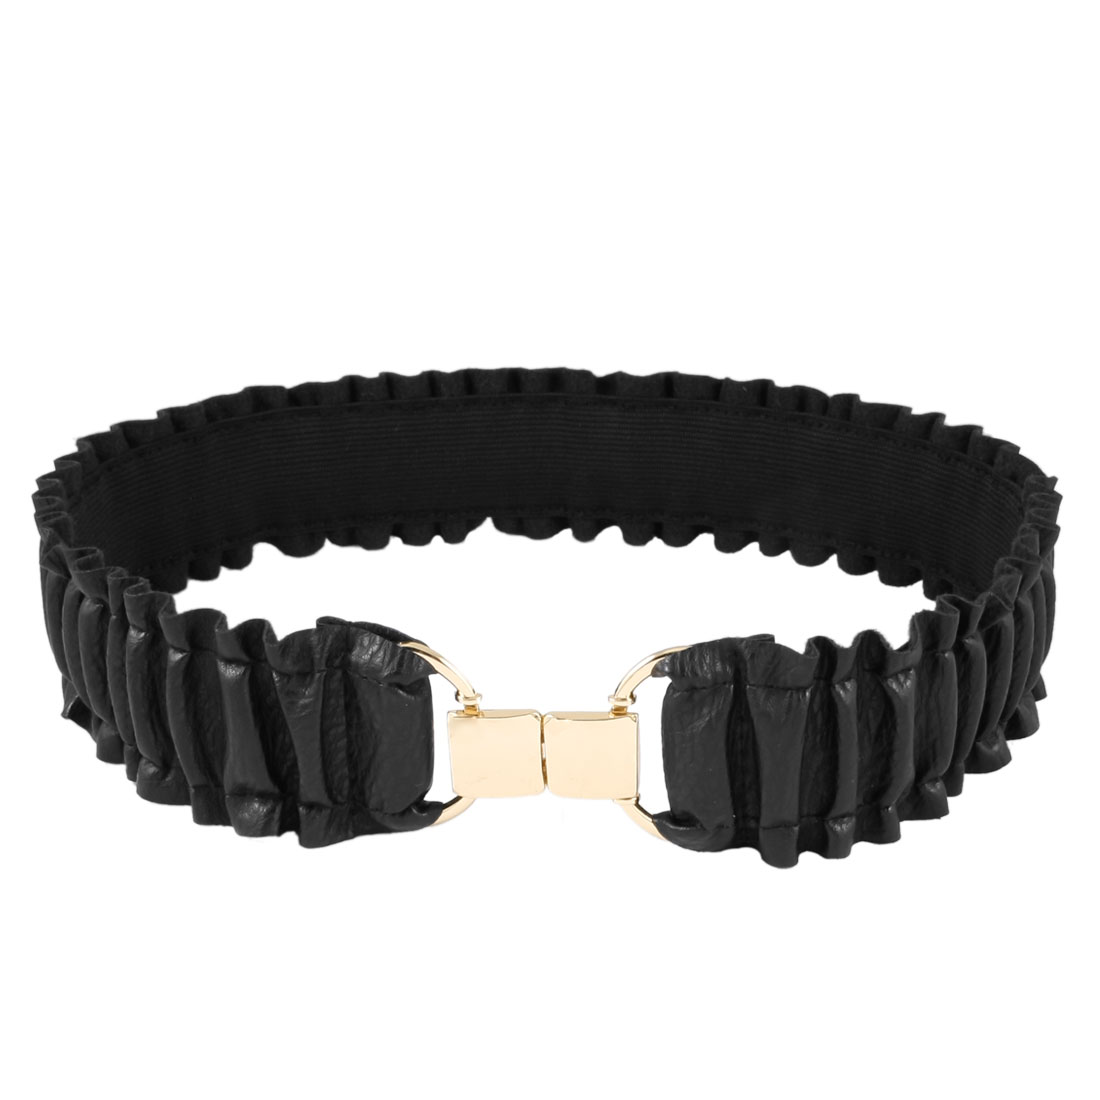 "Ladies Black Ruffle Faux Leather Stretchy Waistband Waist Belt 1.9"" Width"